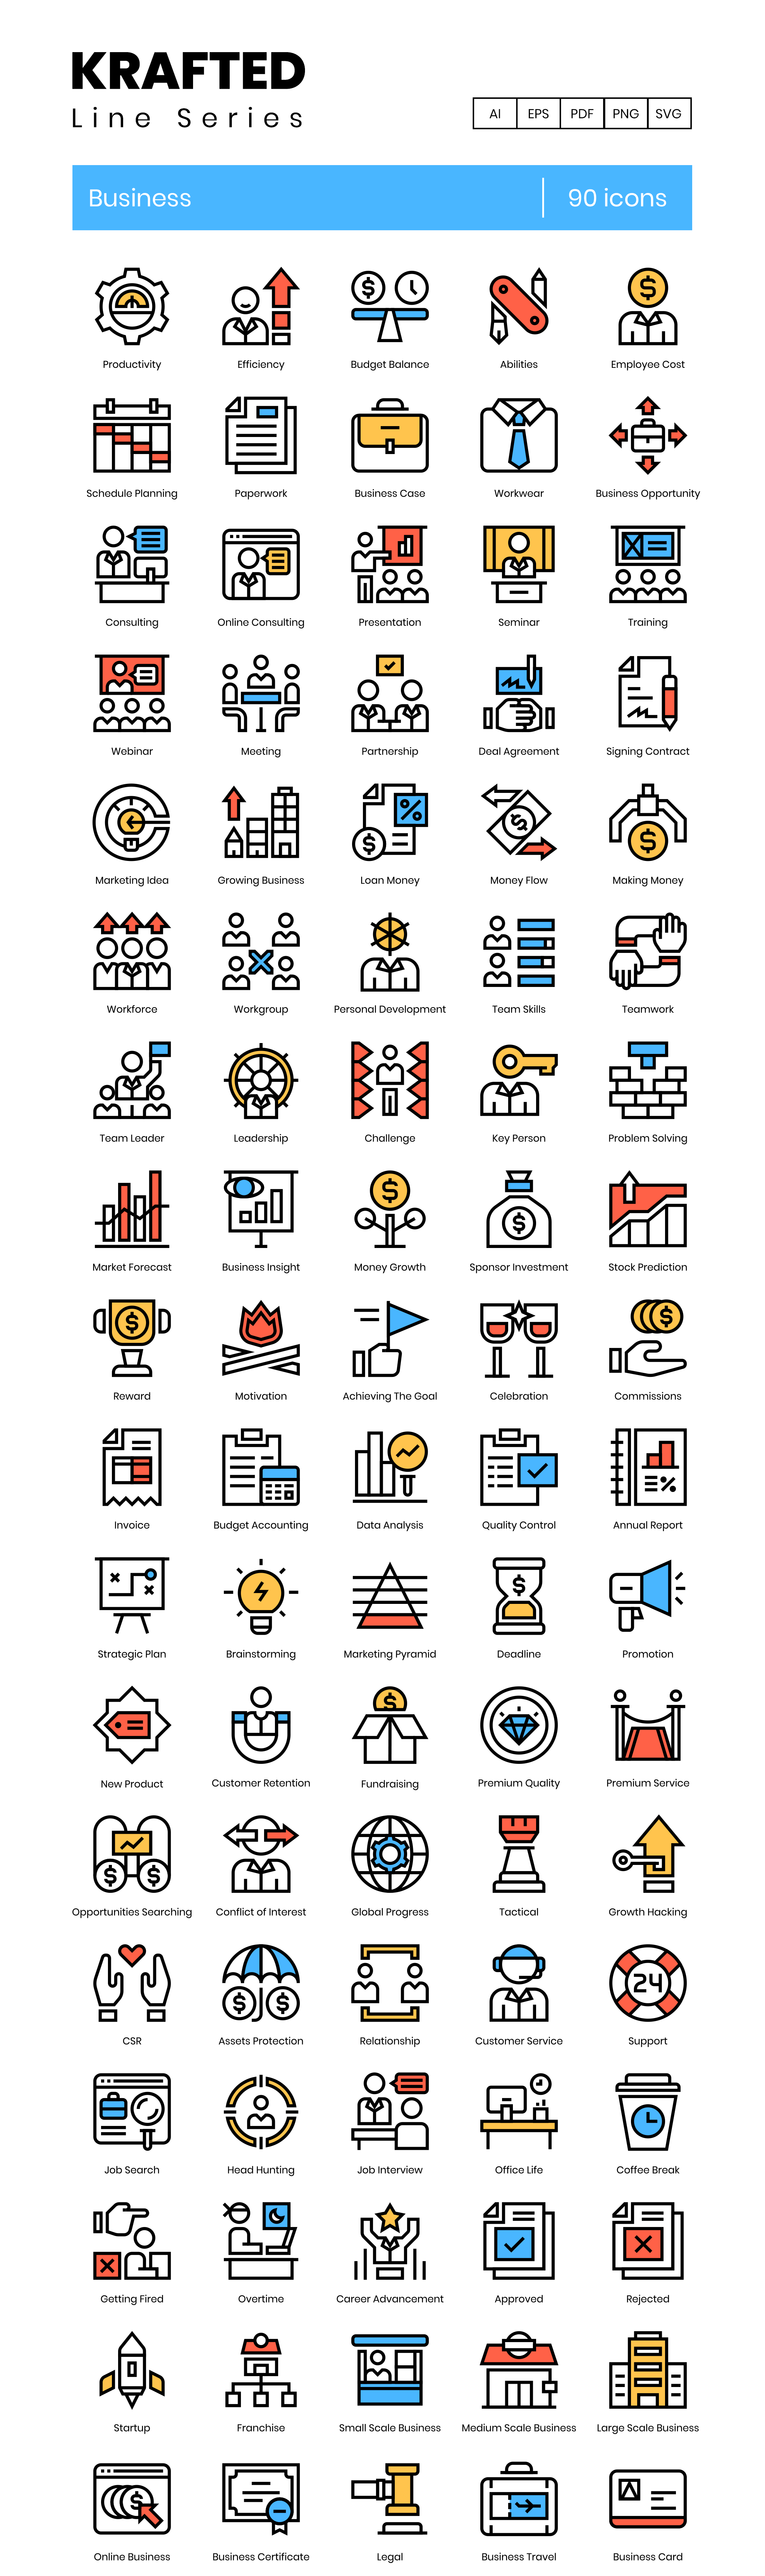 Company Vector Icons Preview Image